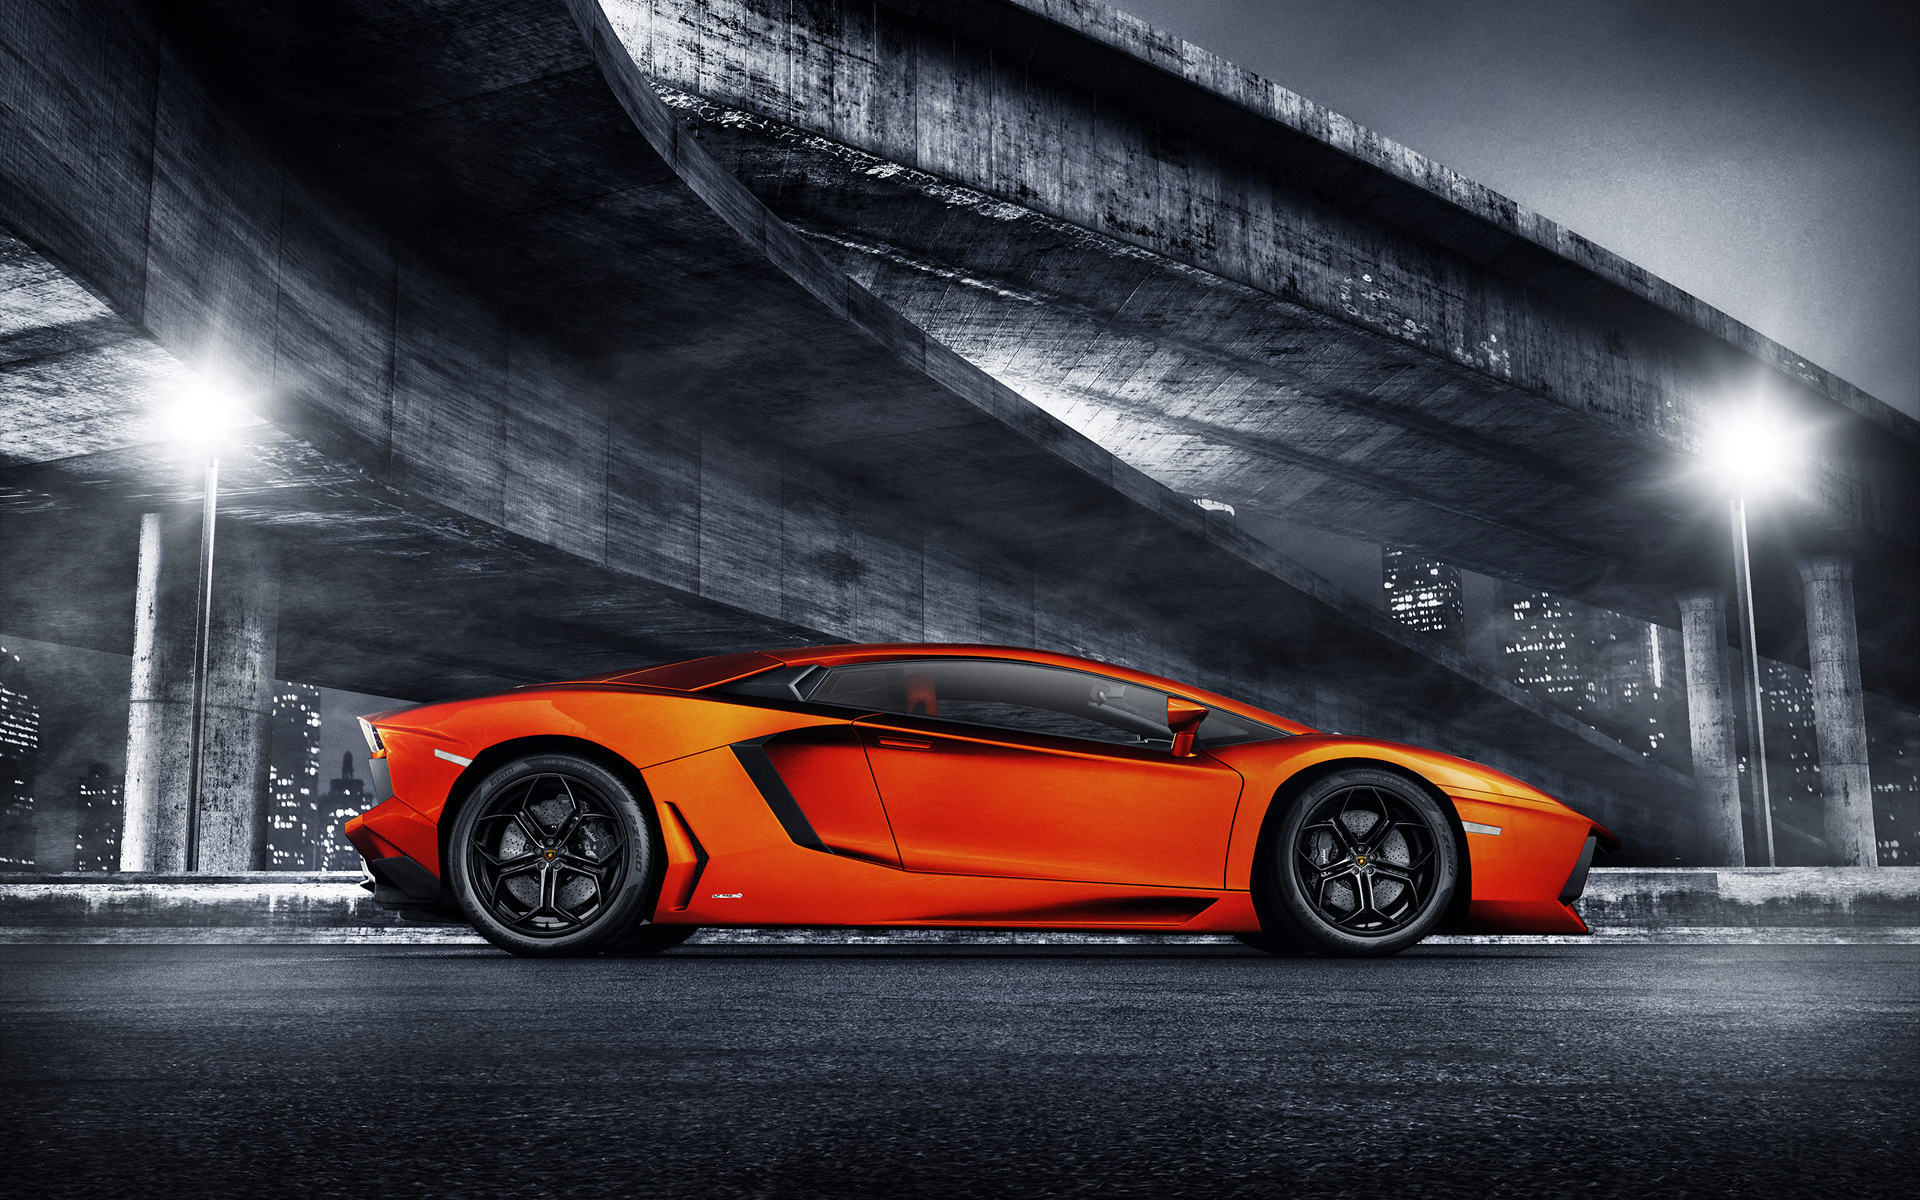 Amazing Orange Car Wallpaper